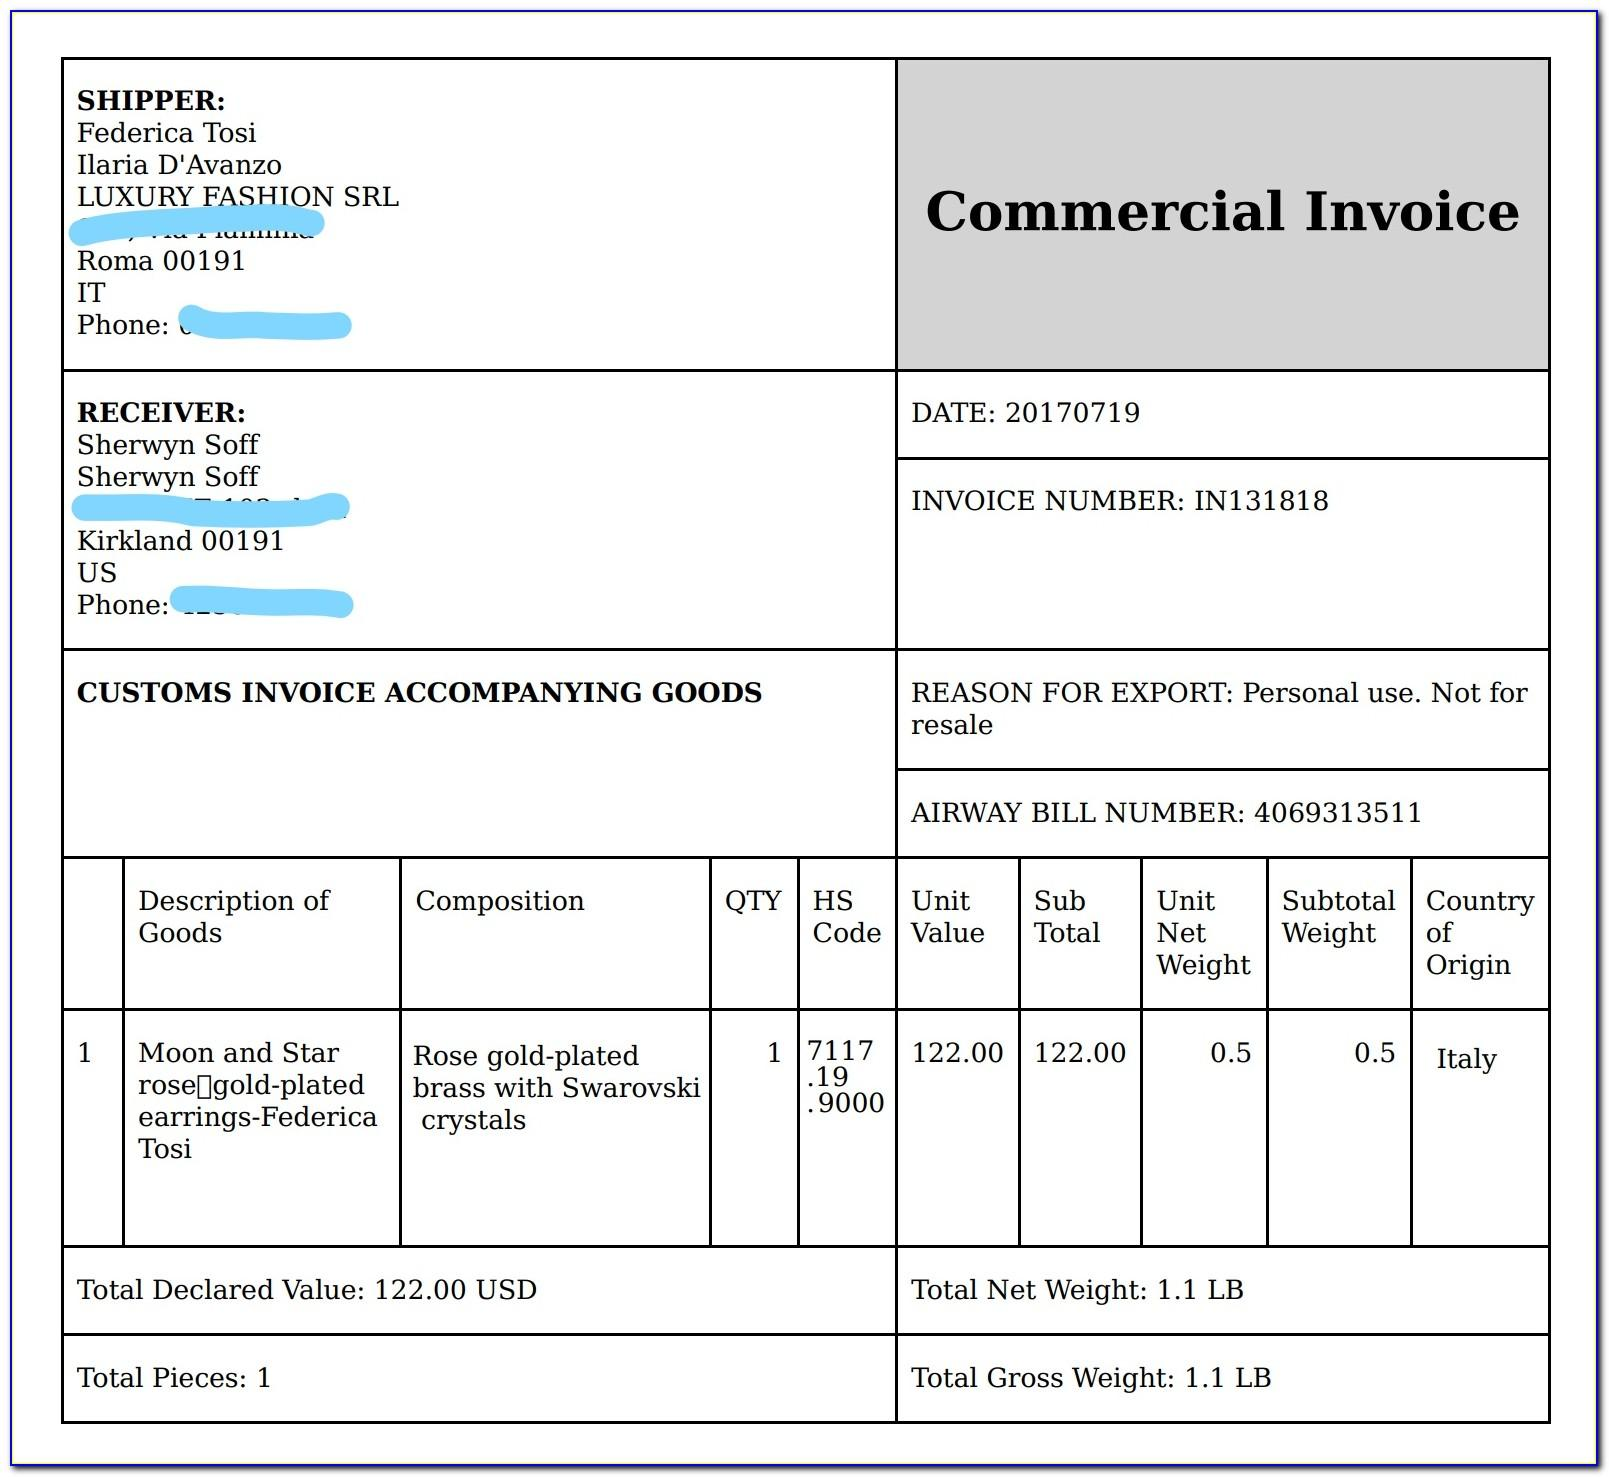 Subaru Ascent Dealer Invoice Price